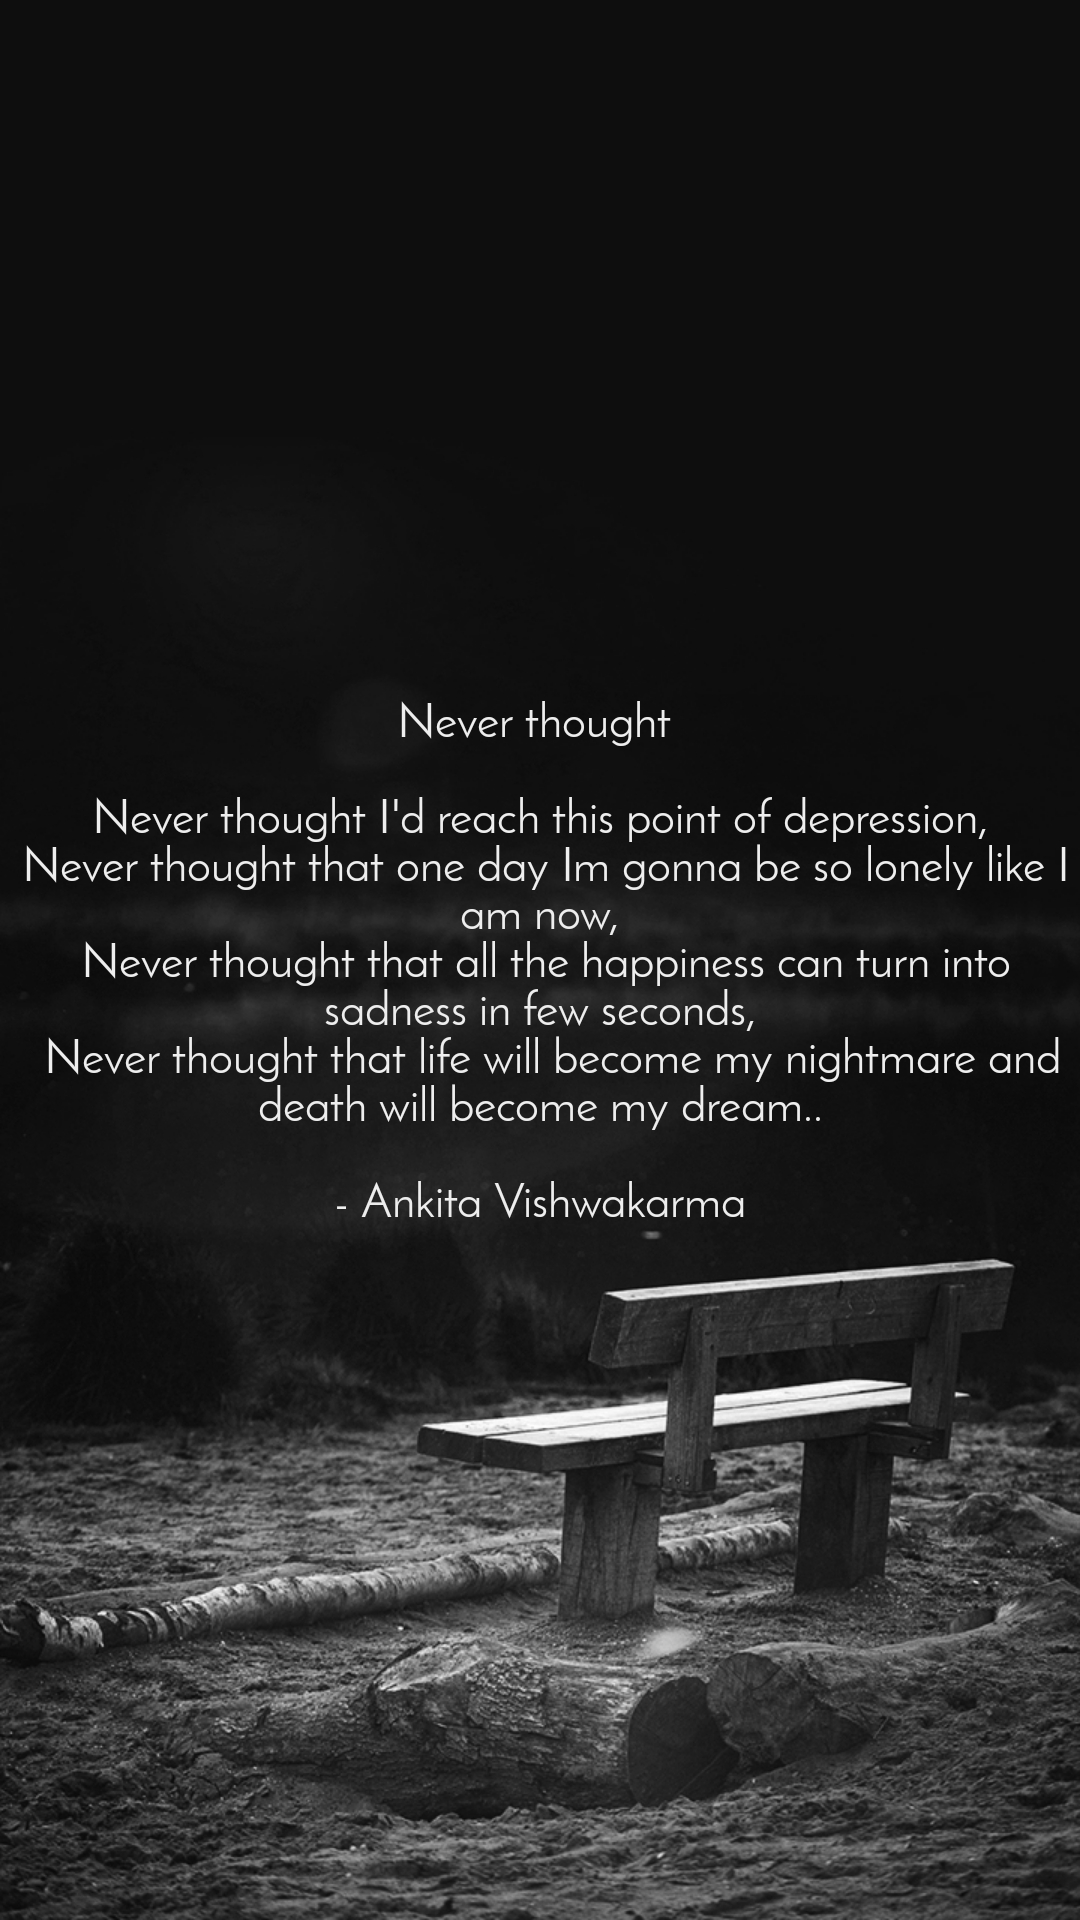 Never thought   Never thought I'd reach this point of depression,  Never thought that one day Im gonna be so lonely like I am now,  Never thought that all the happiness can turn into sadness in few seconds,   Never thought that life will become my nightmare and death will become my dream..  - Ankita Vishwakarma